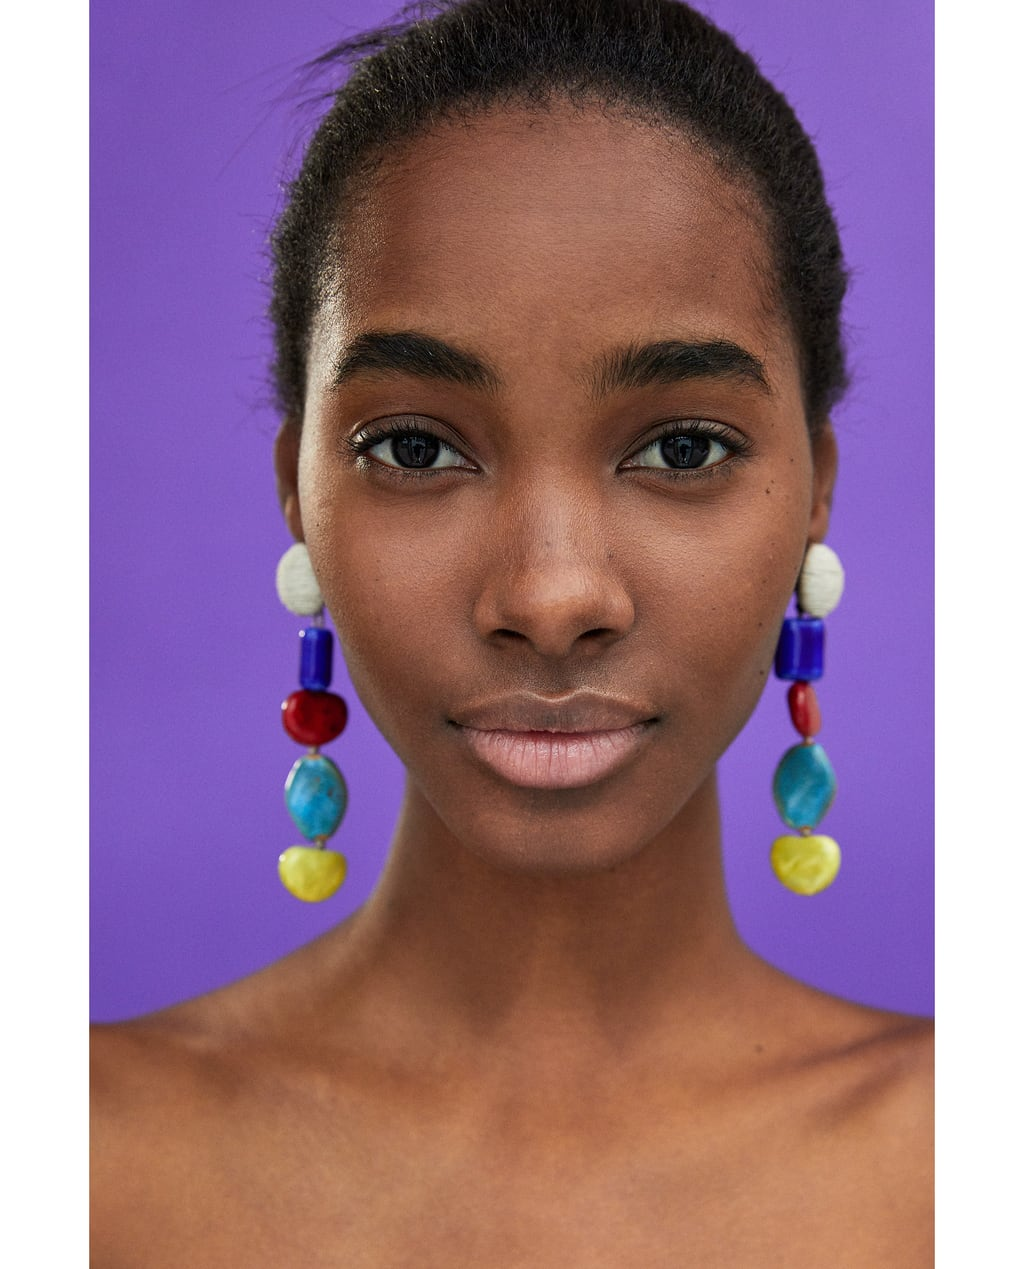 #PurpleReign: How to Wear Ultra Violet